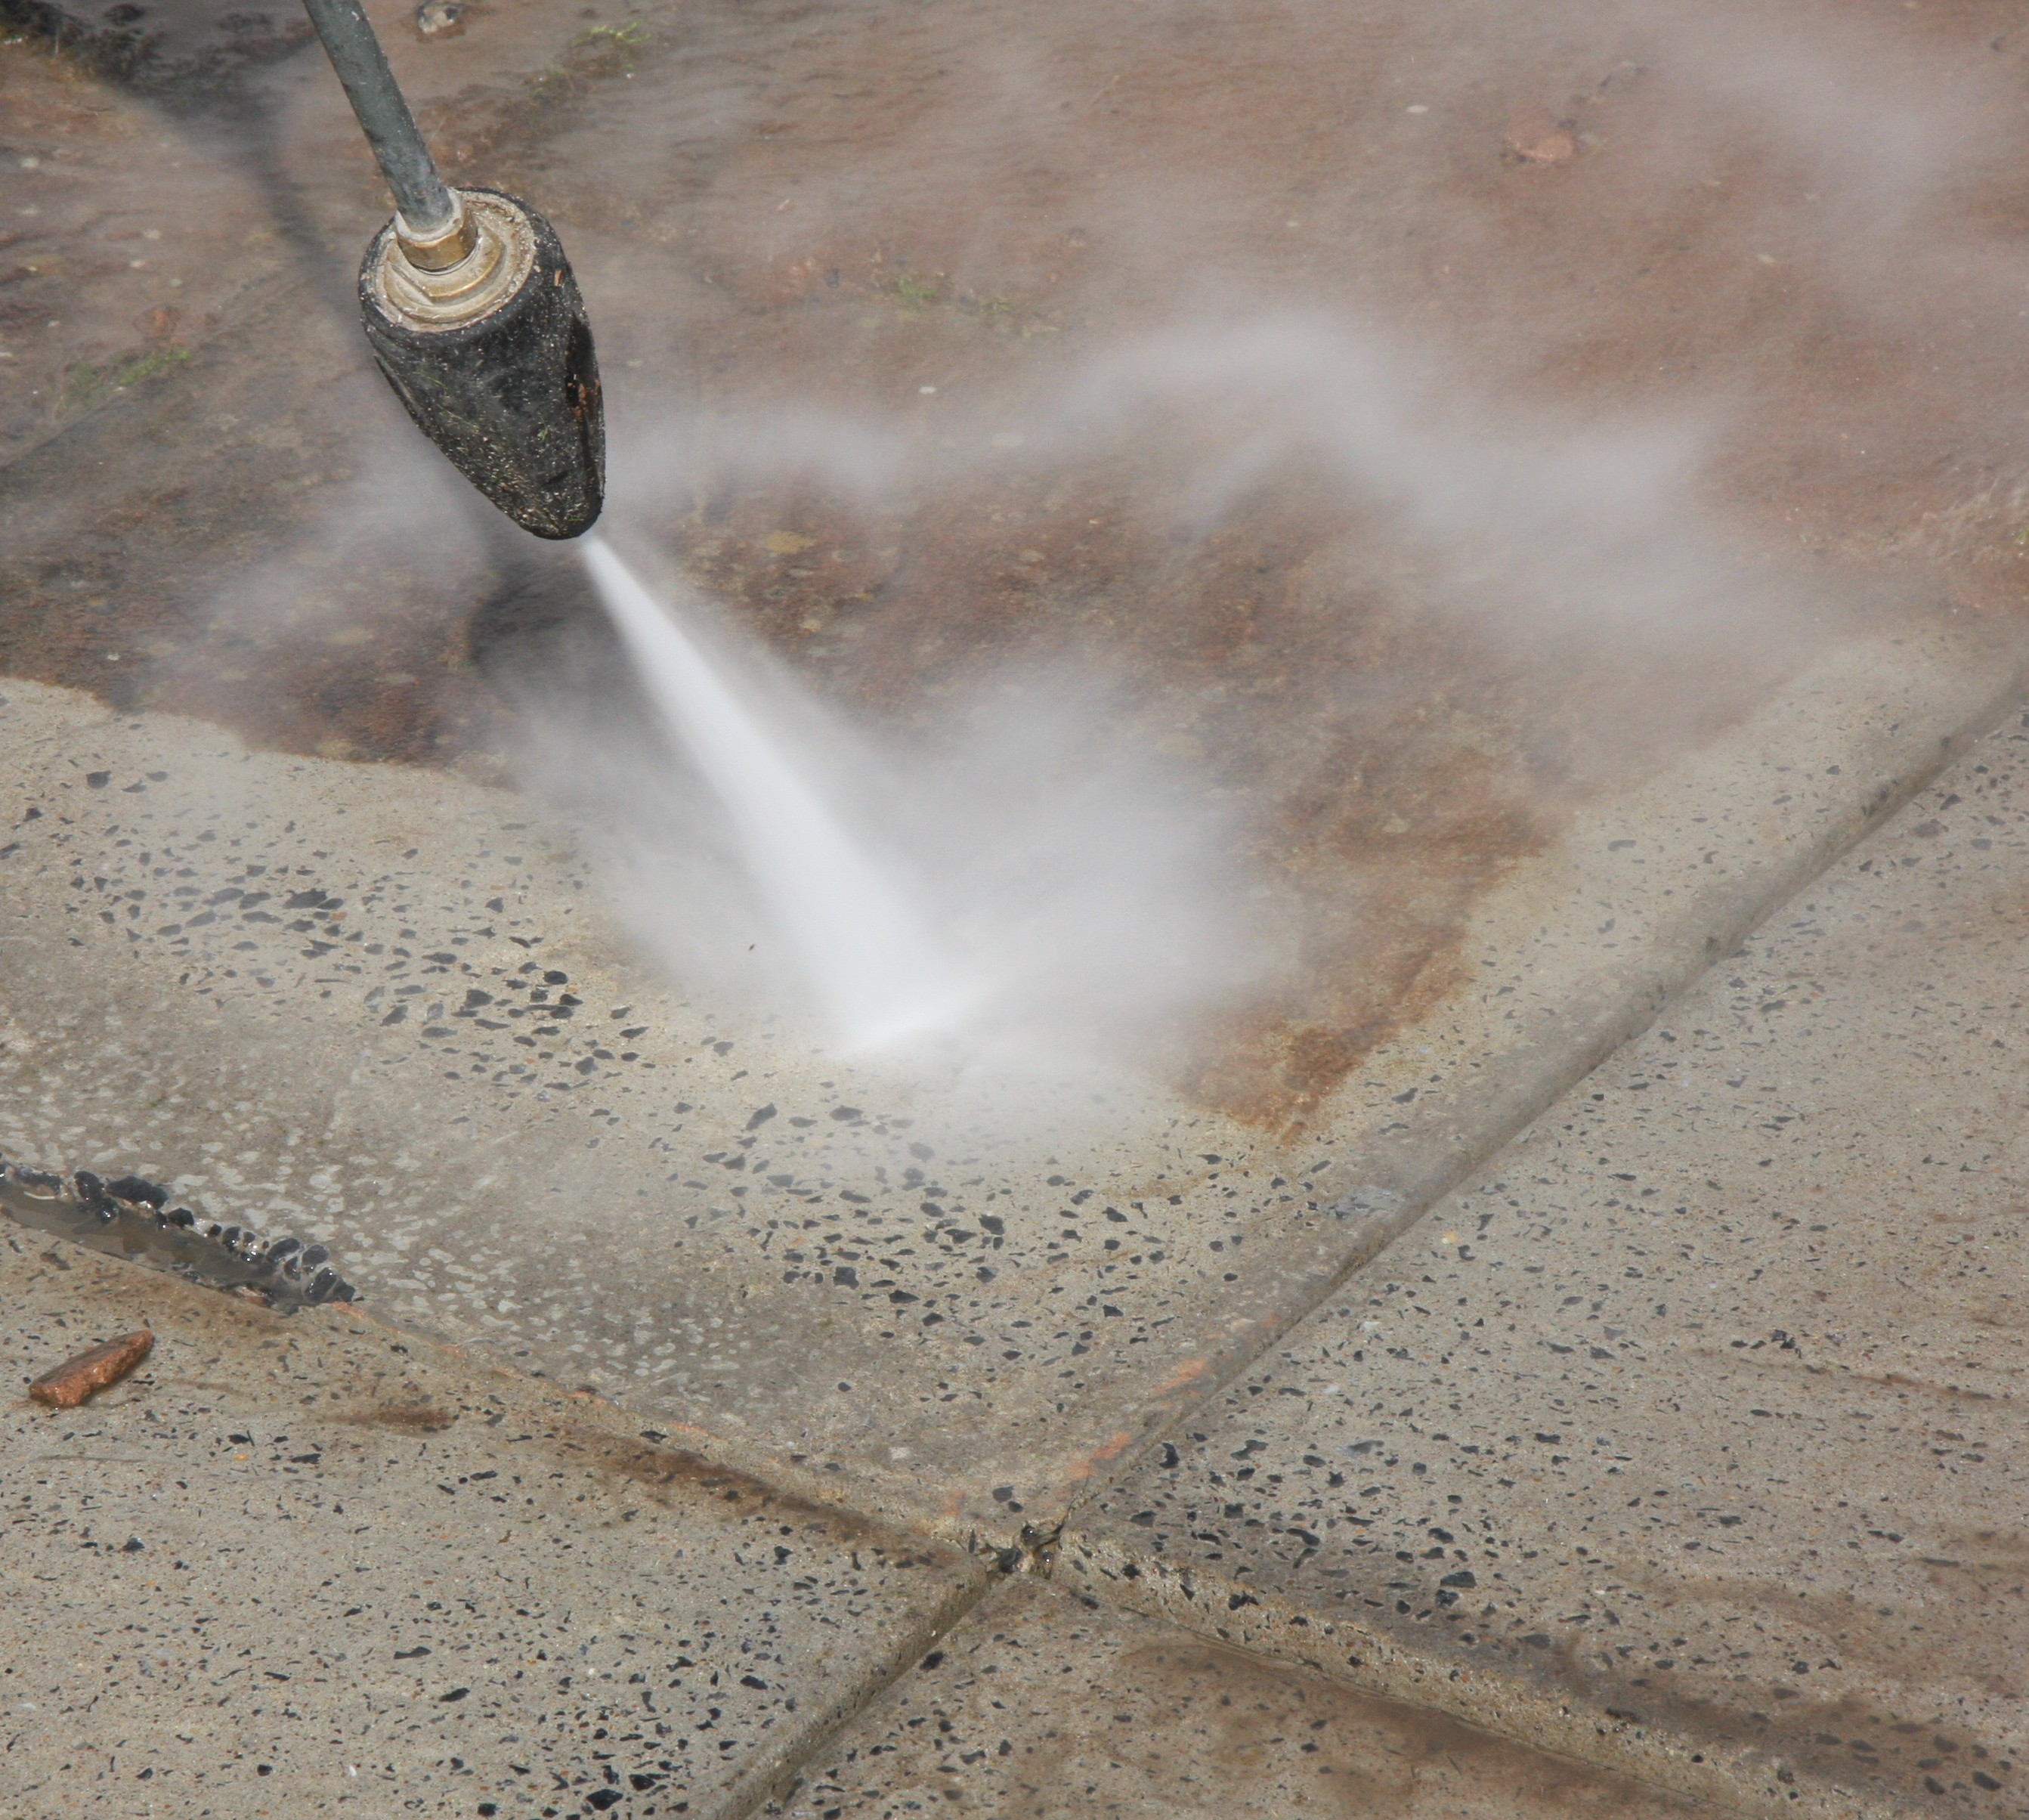 Pressure washing rcleanwales window cleaners for Pressure wash concrete patio